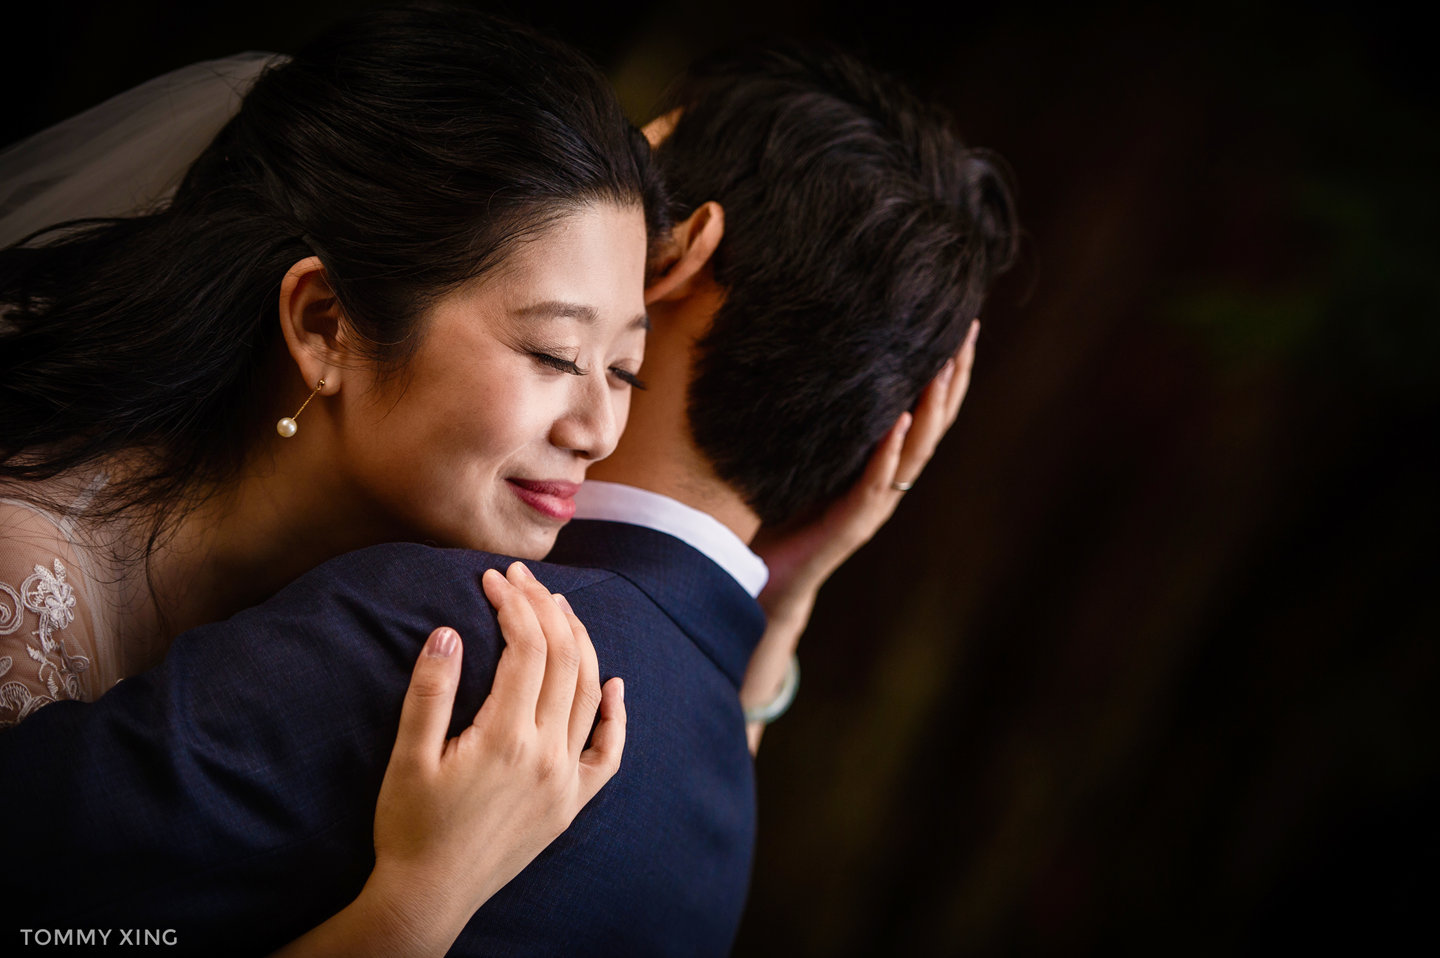 San Francisco Wedding Photography Valley Presbyterian Church WEDDING Tommy Xing Photography 洛杉矶旧金山婚礼婚纱照摄影师102.jpg